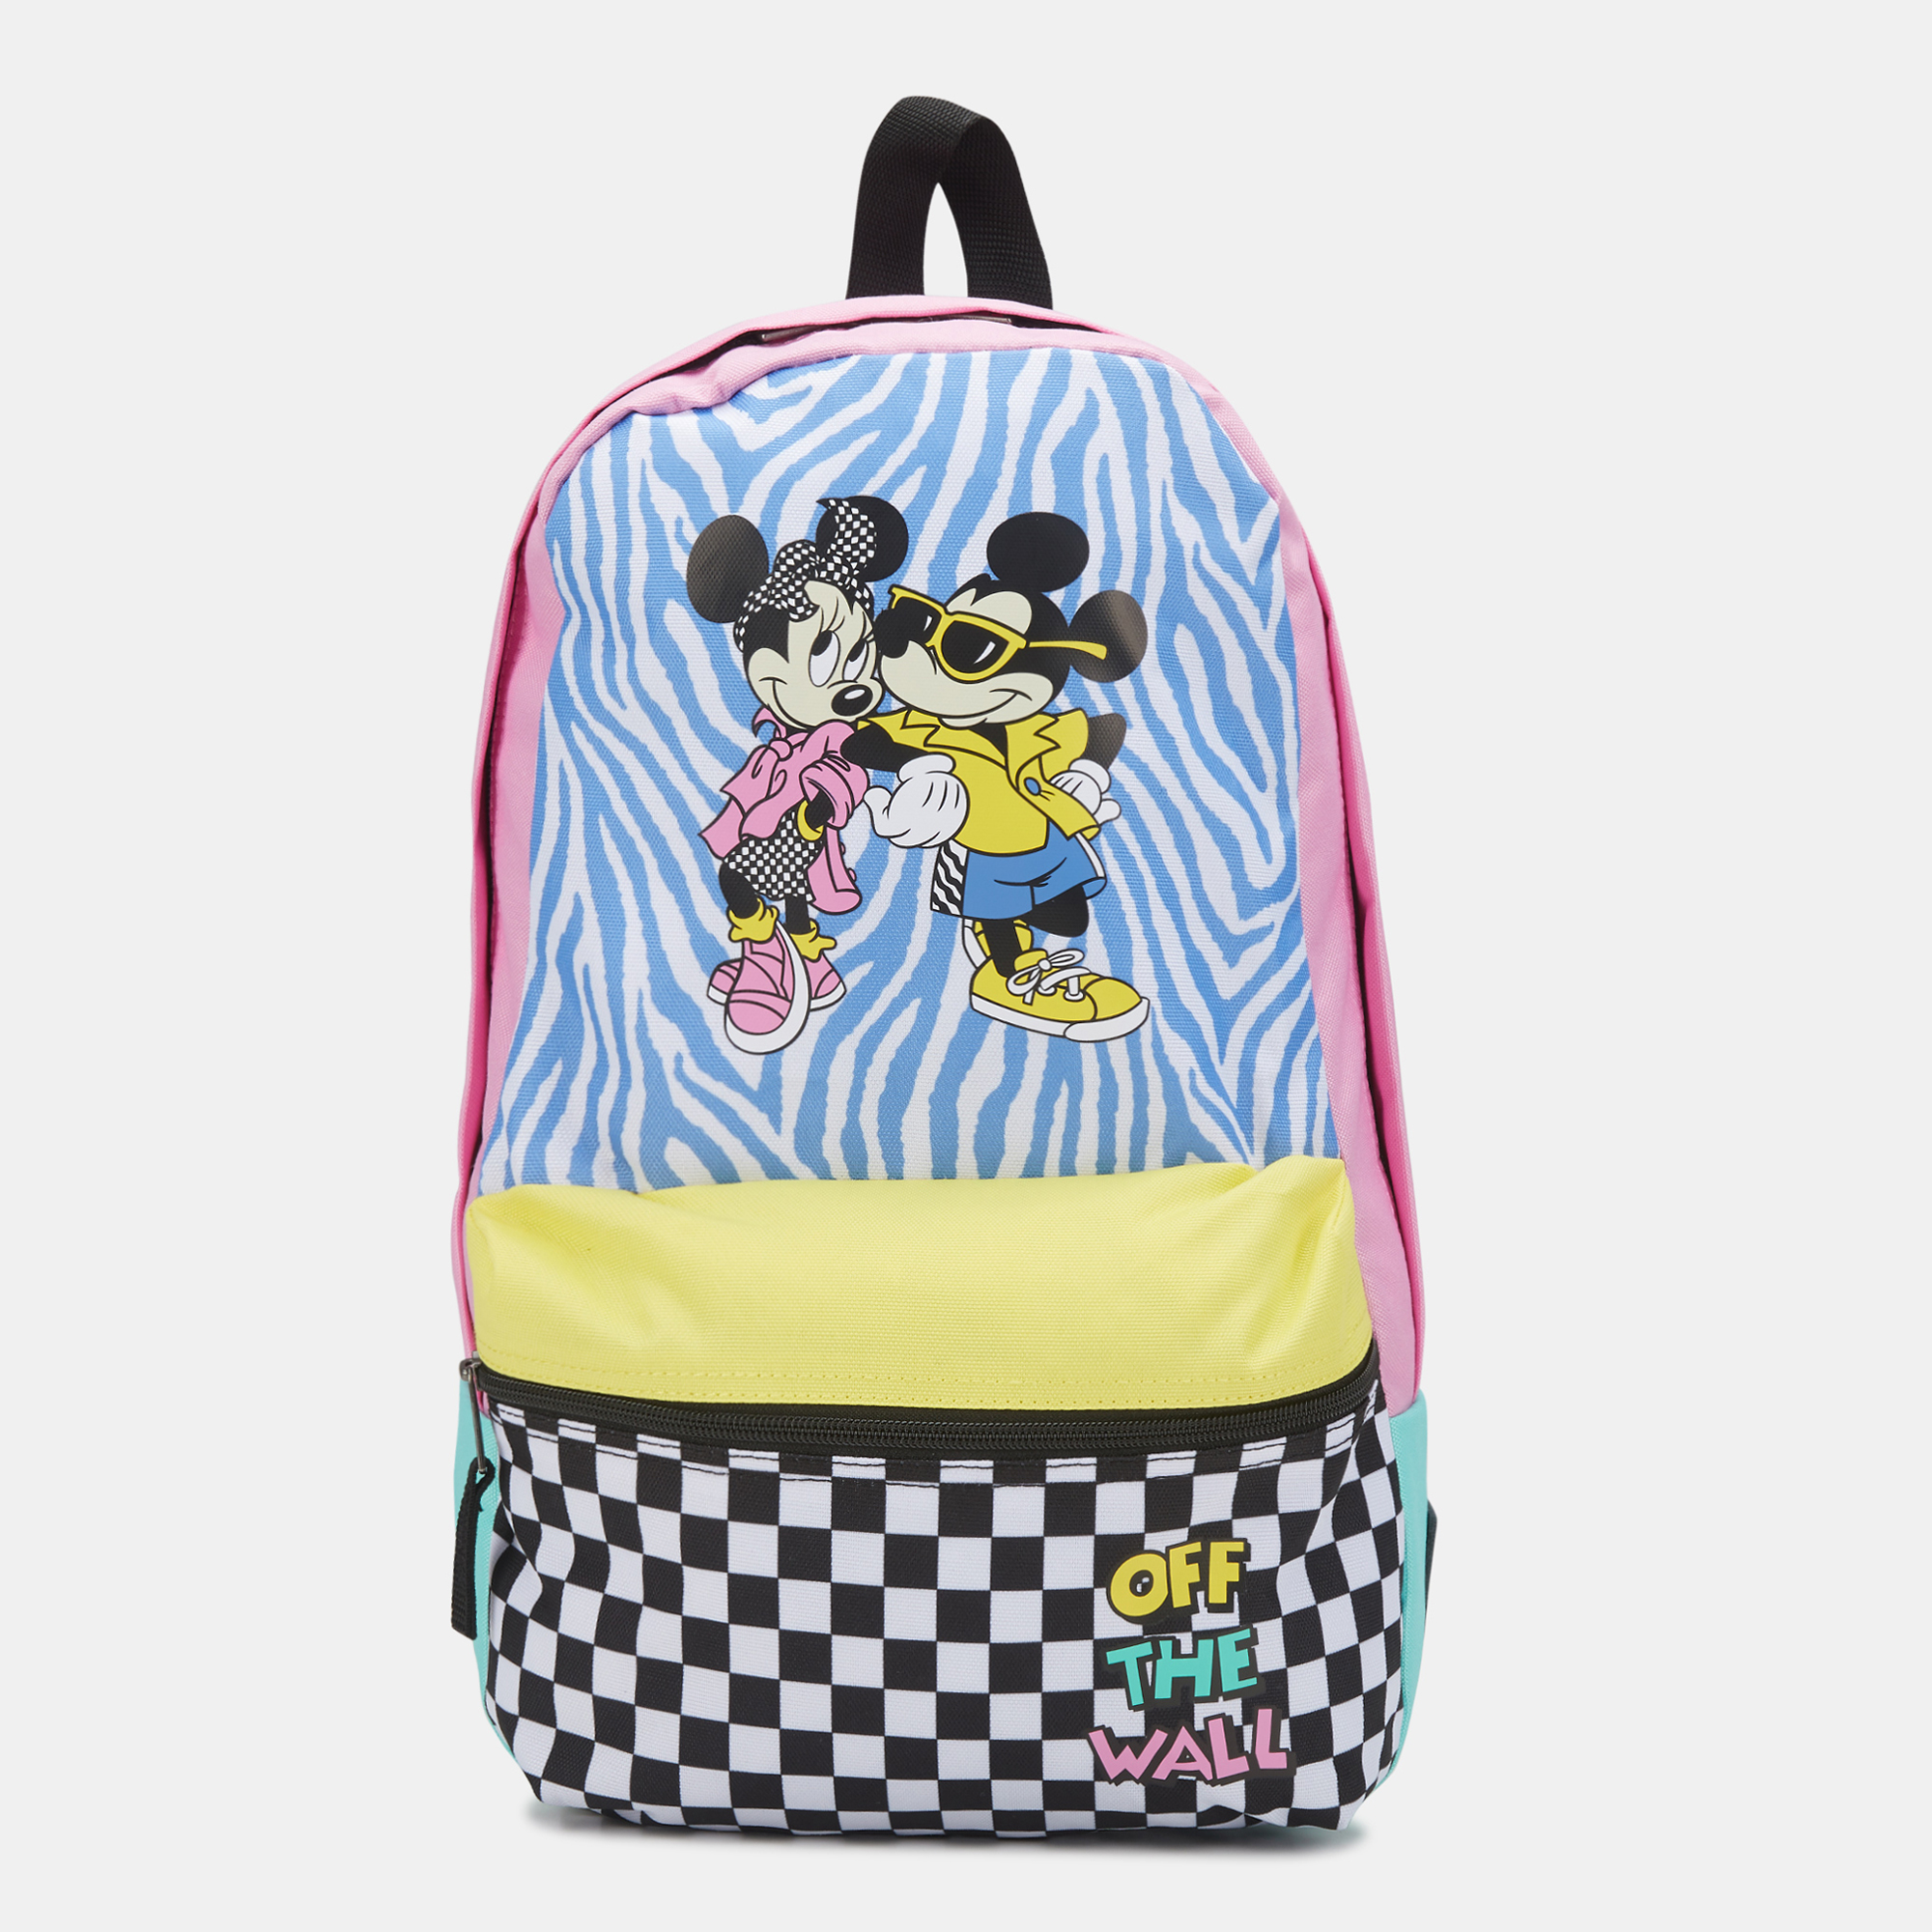 48ad41bf48060 Vans x Disney Mickey Mouse Calico Backpack